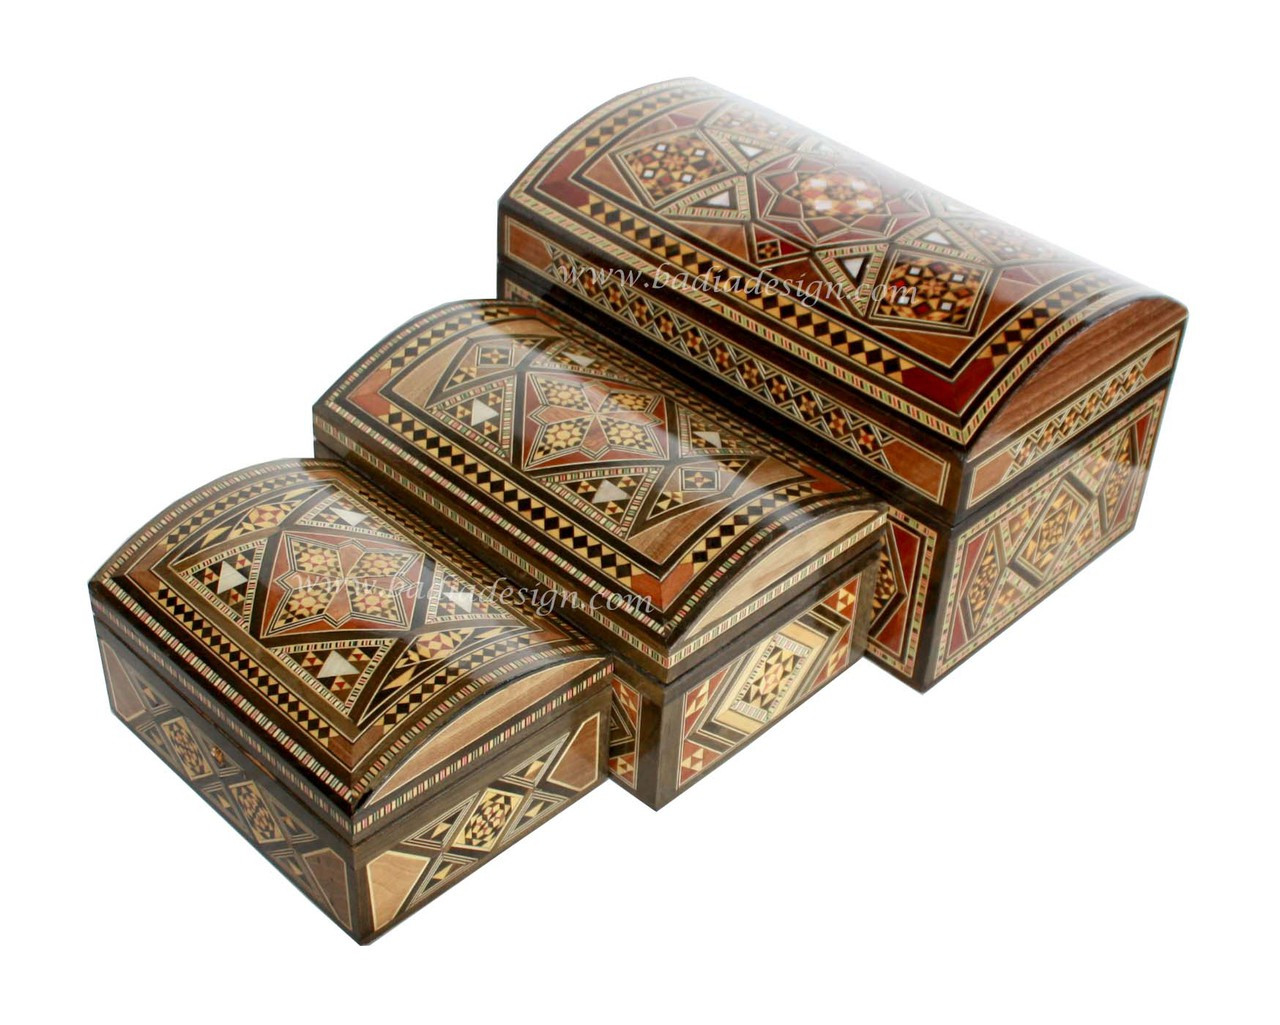 Inlaid Wooden Jewelry Box with a Syrian Design from Badia Design Inc